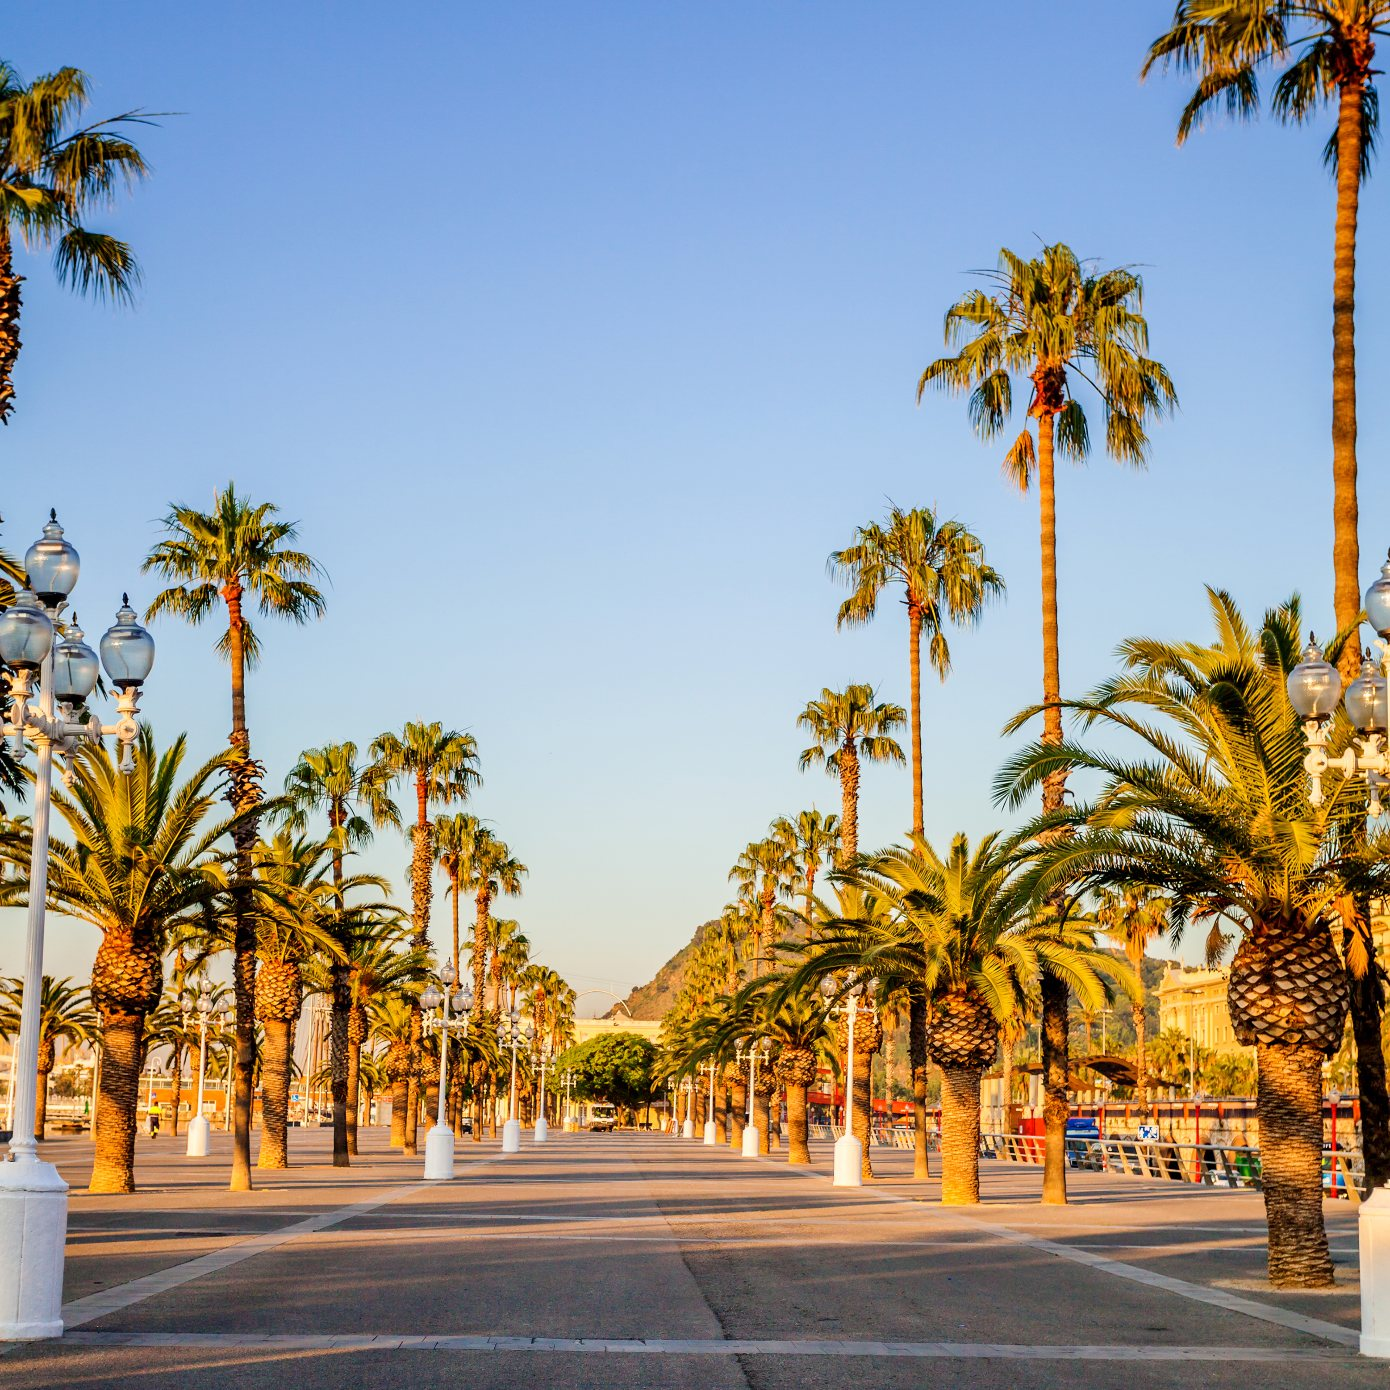 Avenue with palm trees in Barcelona. Spain